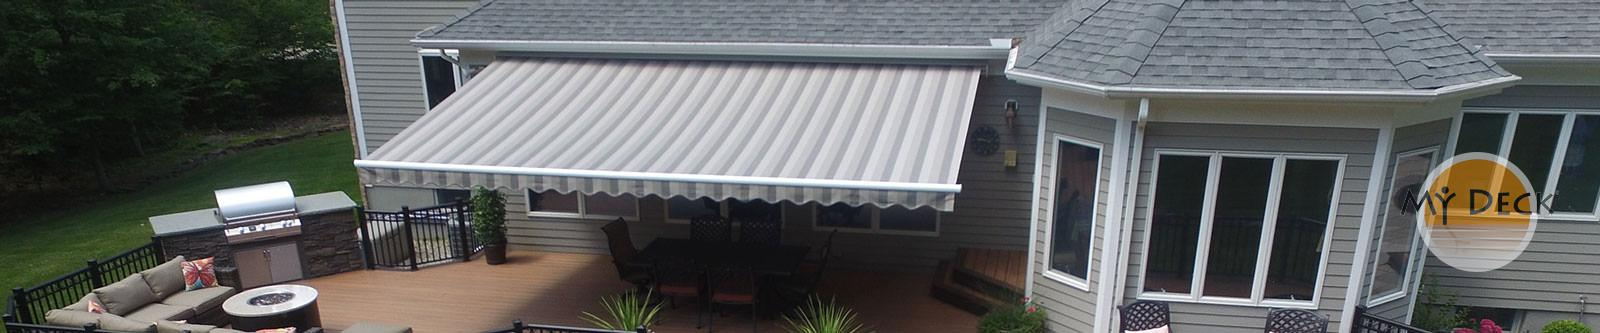 Benefits Of A Retractable Awning 7